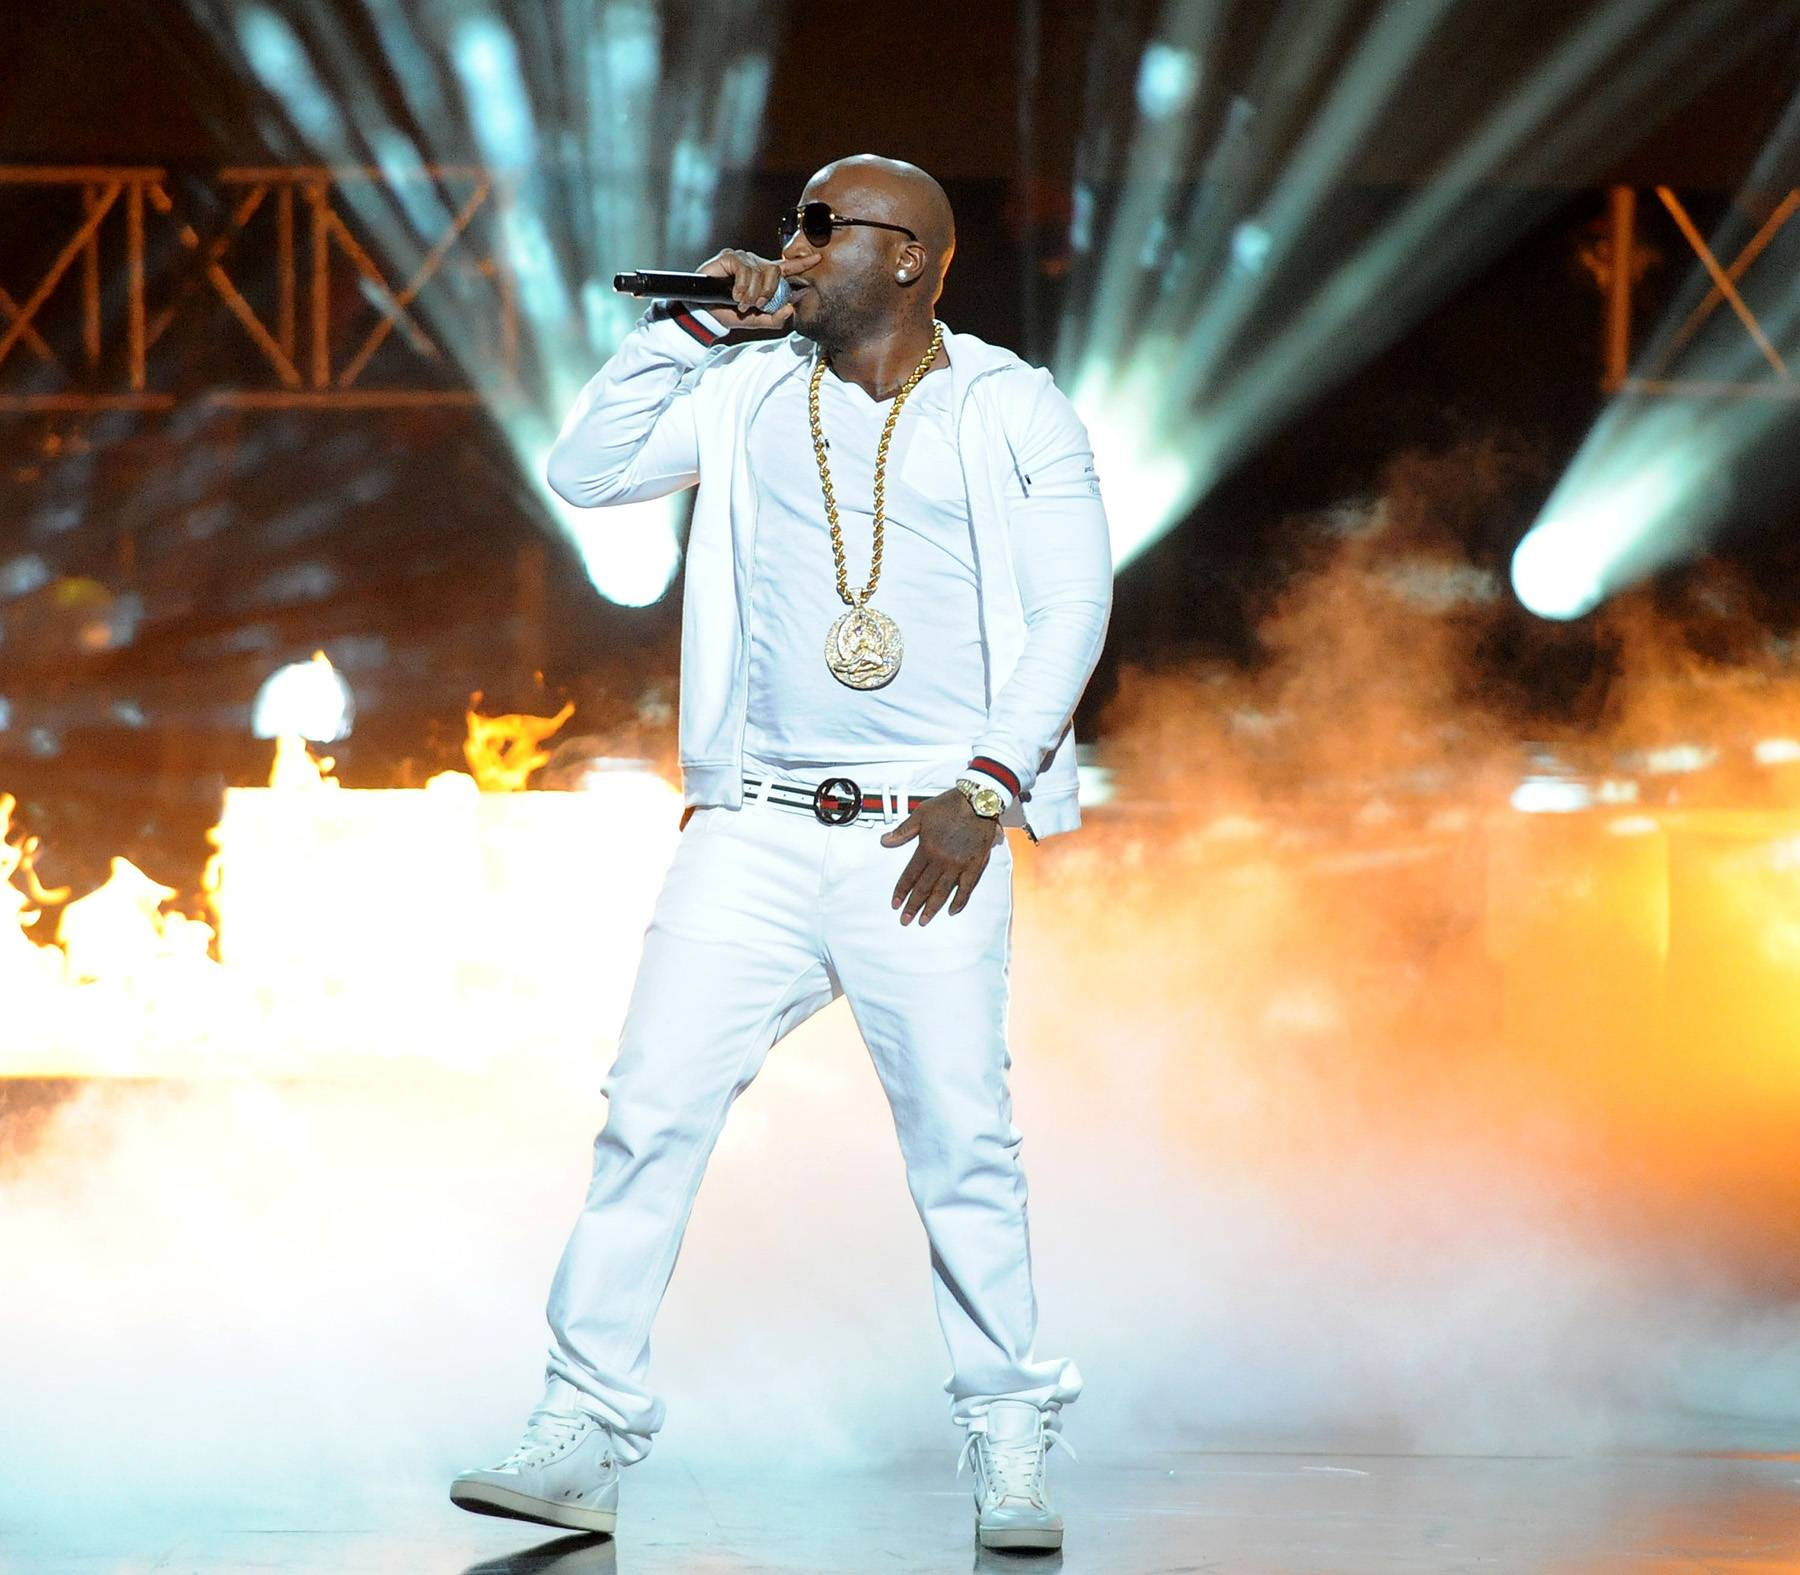 /content/dam/betcom/images/2011/10/Music-10.16-10.31/102611-music-delayed-young-jeezy.jpg